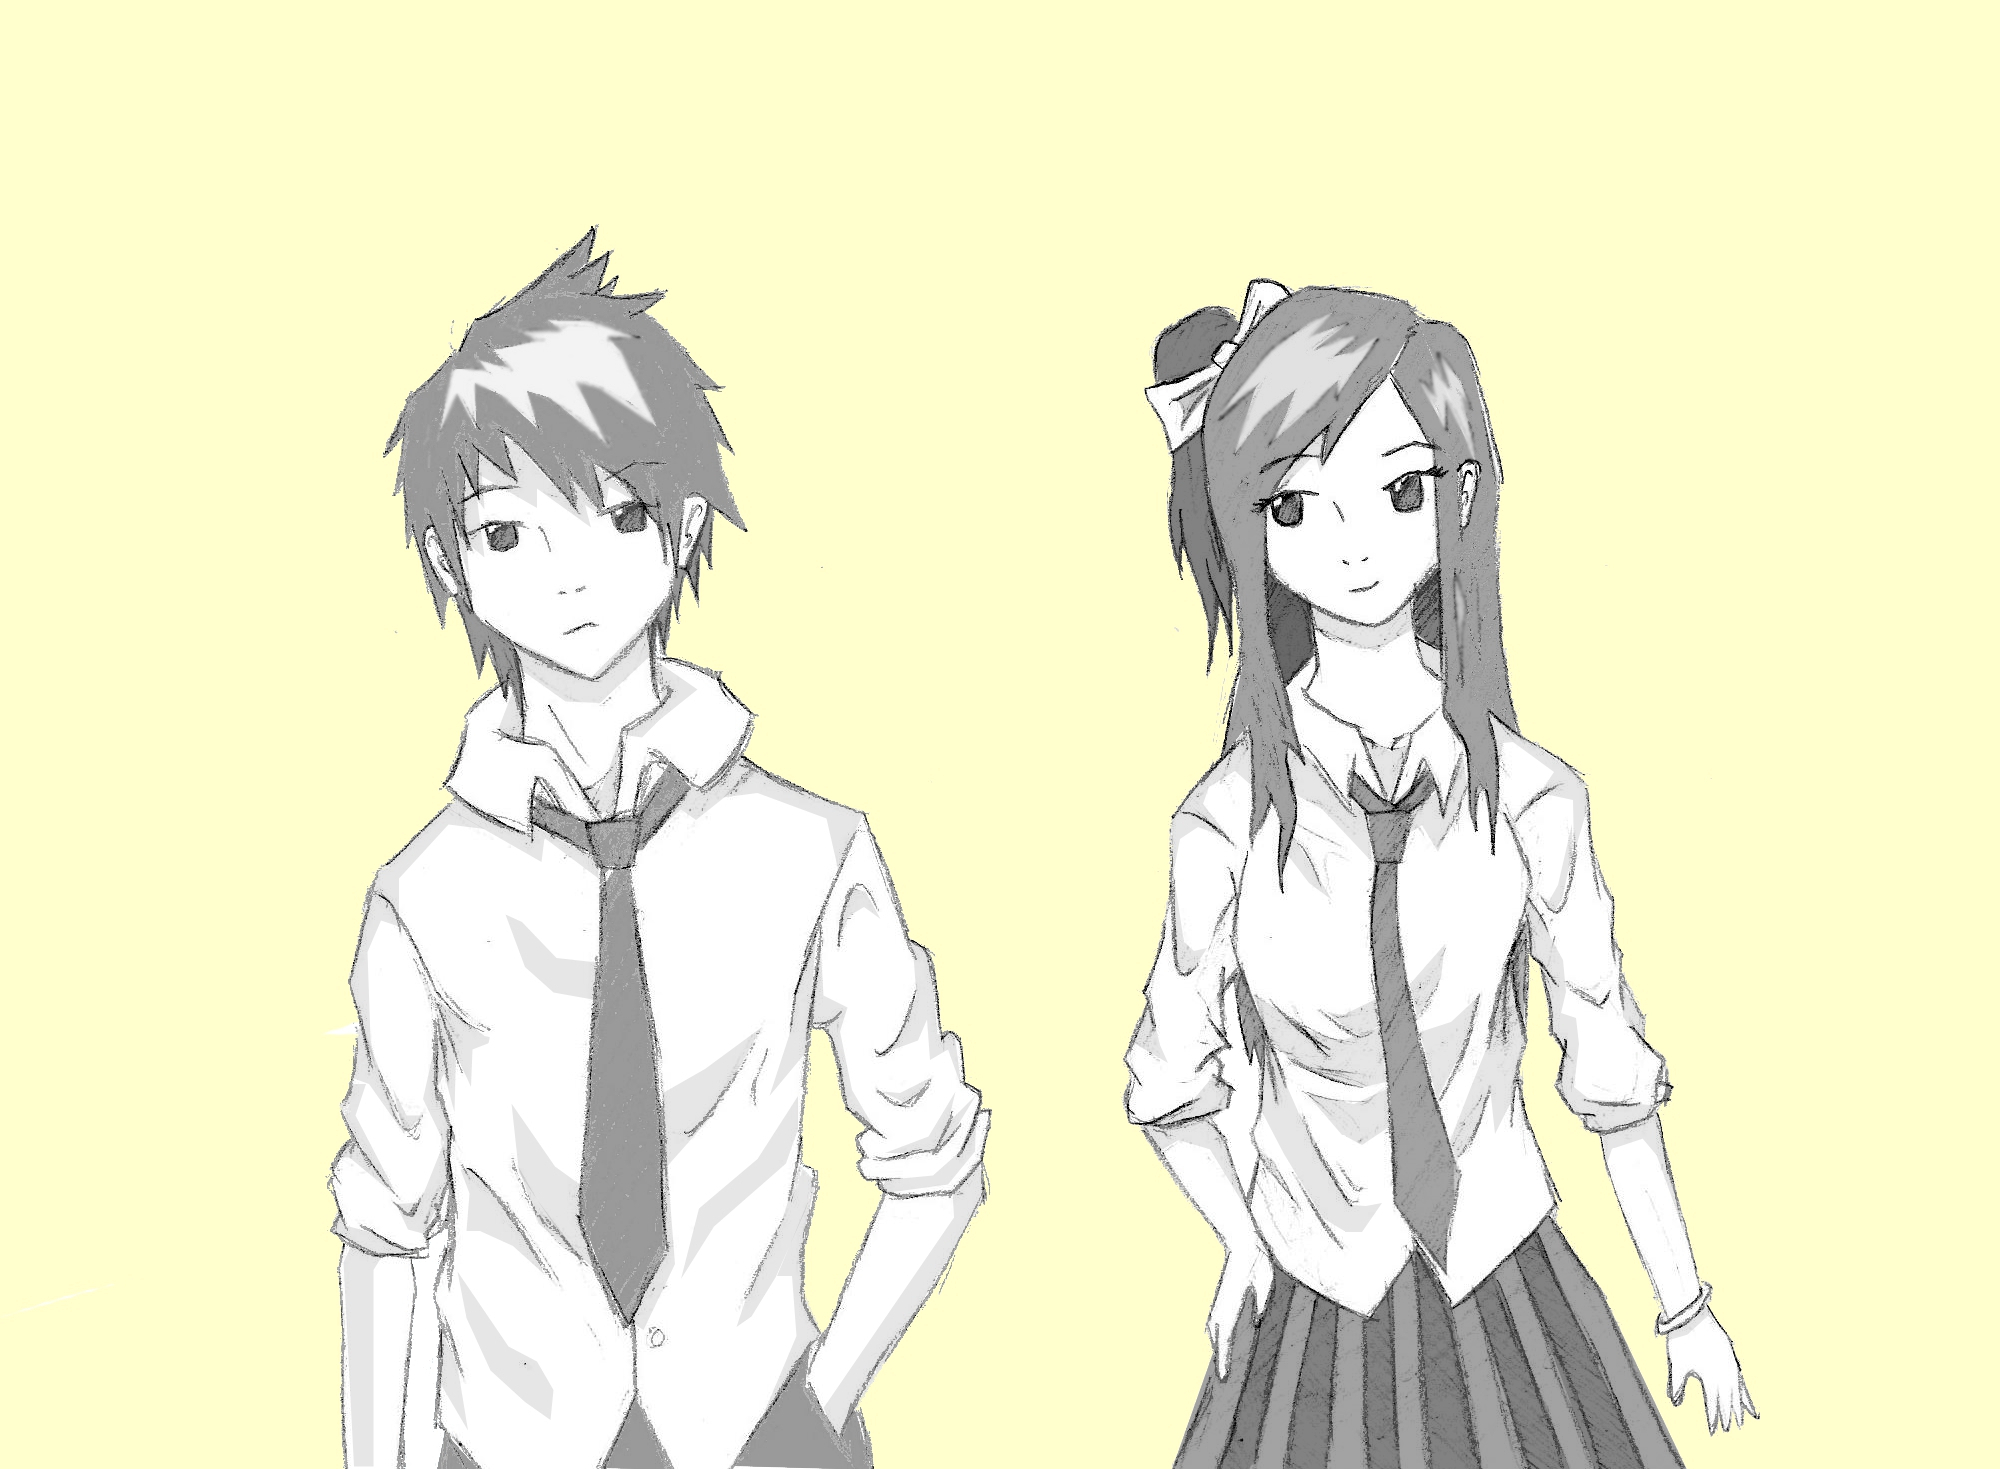 2000x1469 Anime Friends Drawing Anime Friends Boy And Girl Download